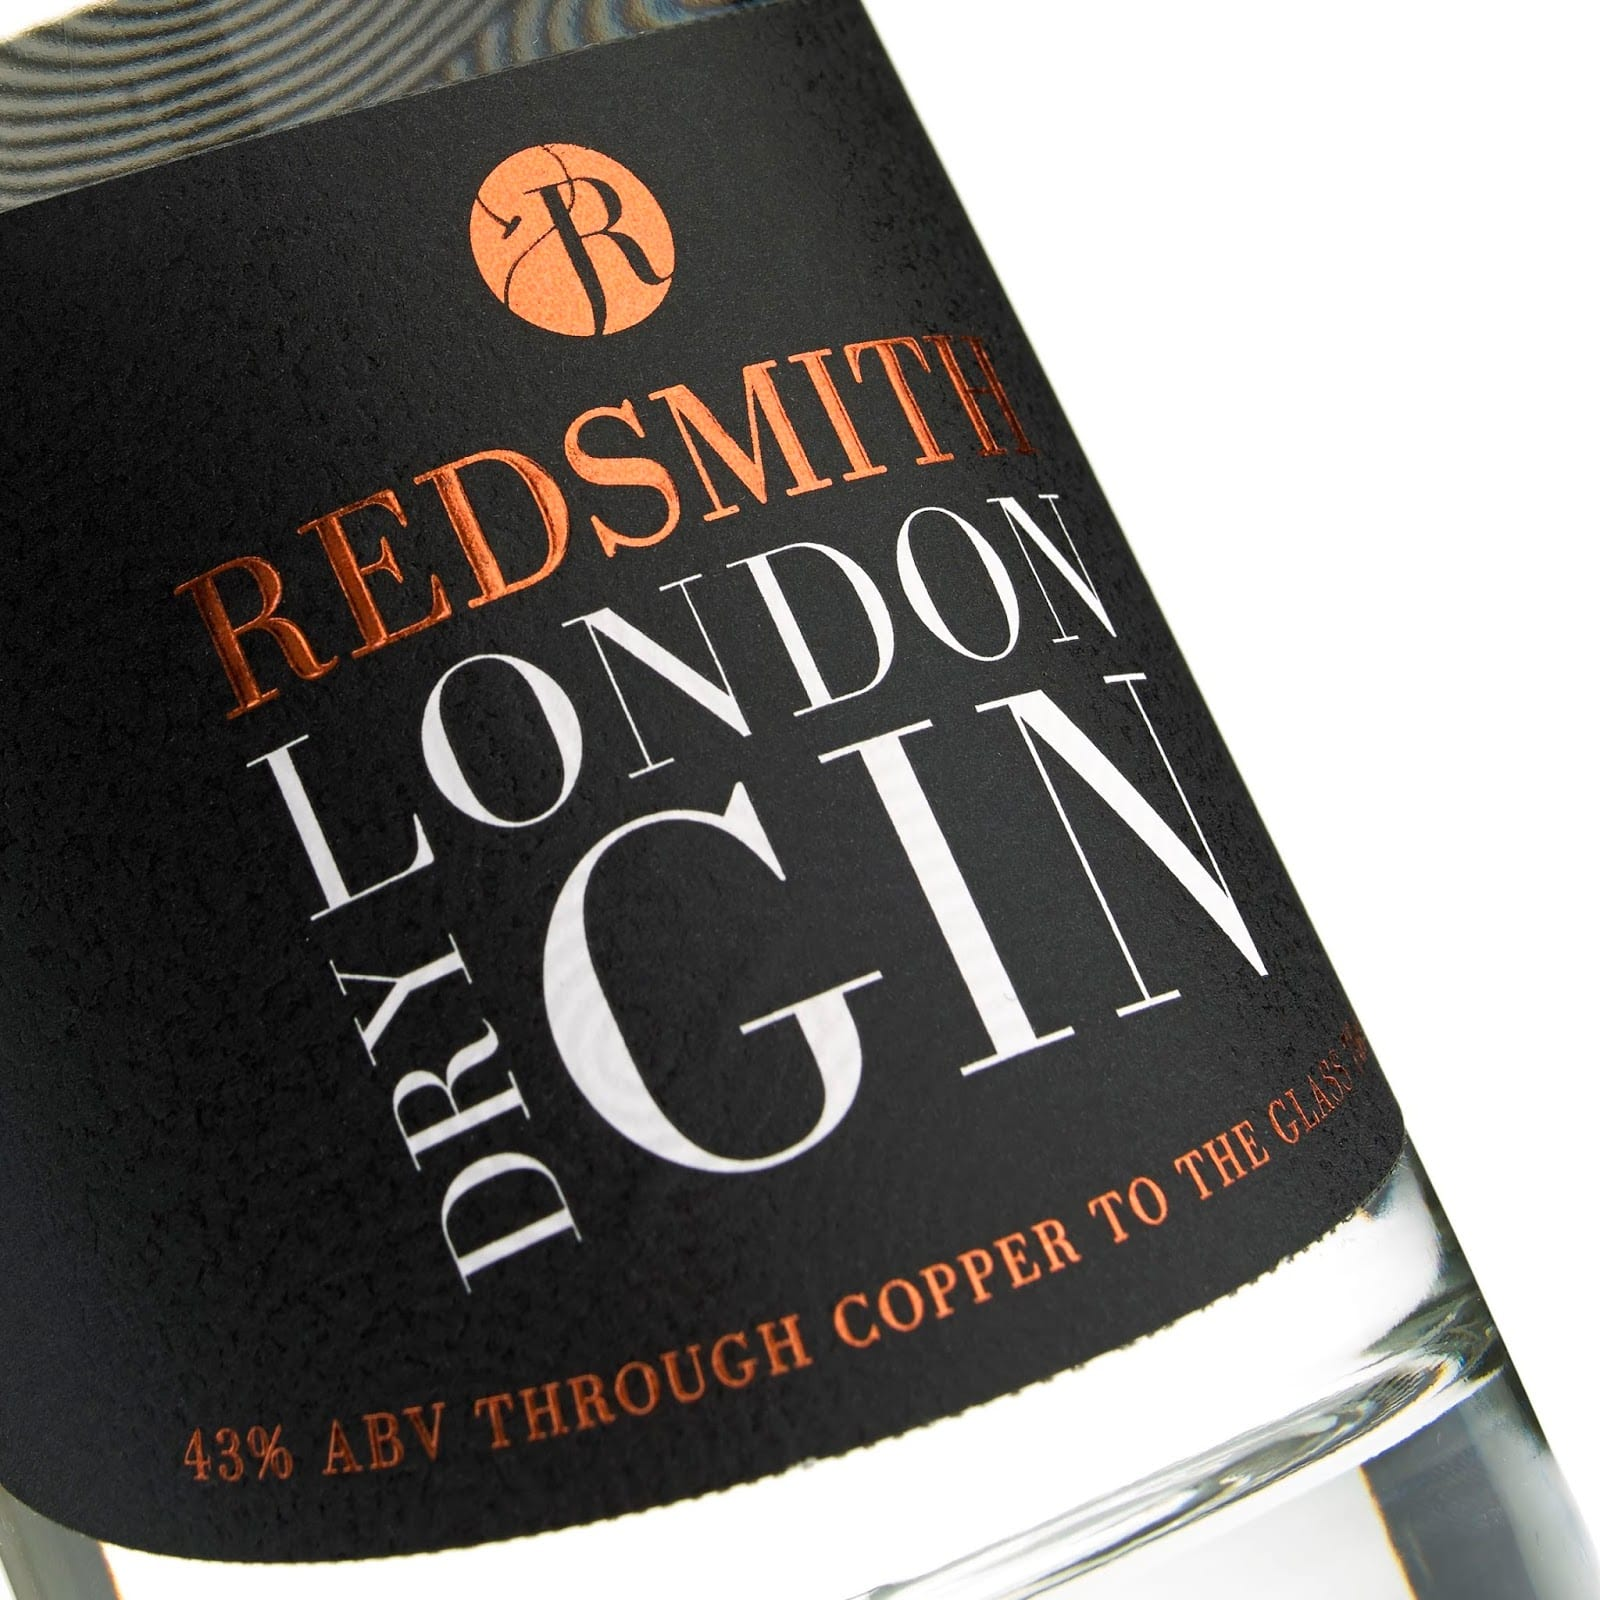 Royston Labels Redsmith 9 - Redsmith London Dry Gin